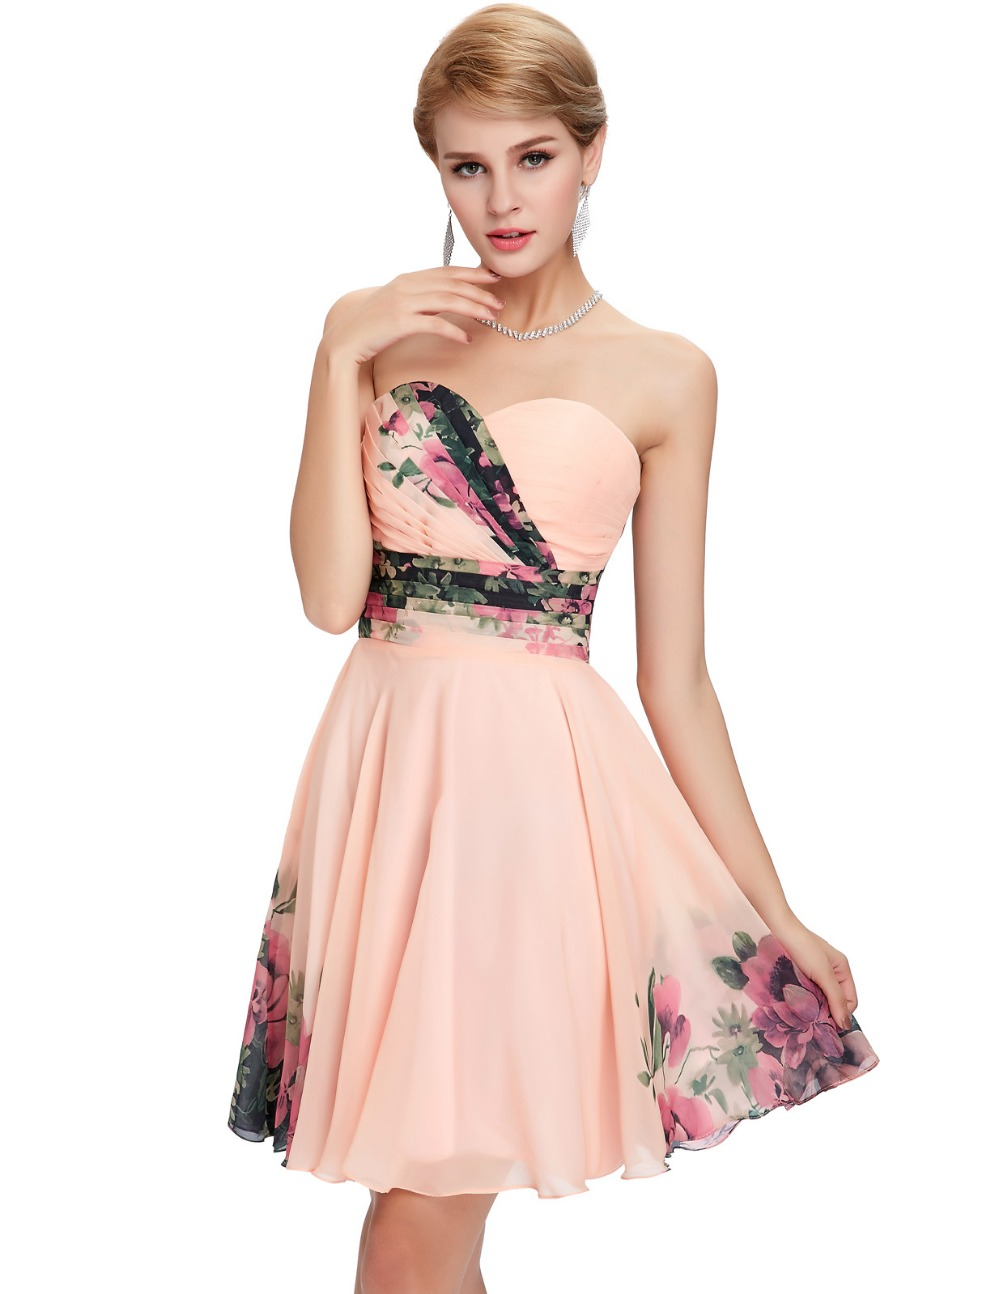 294b87ba117 ... Freeshipping 2015 New Sexy Women Floral Print dress Runway Vintage  Party Gown Short Pattern Evening Prom ...